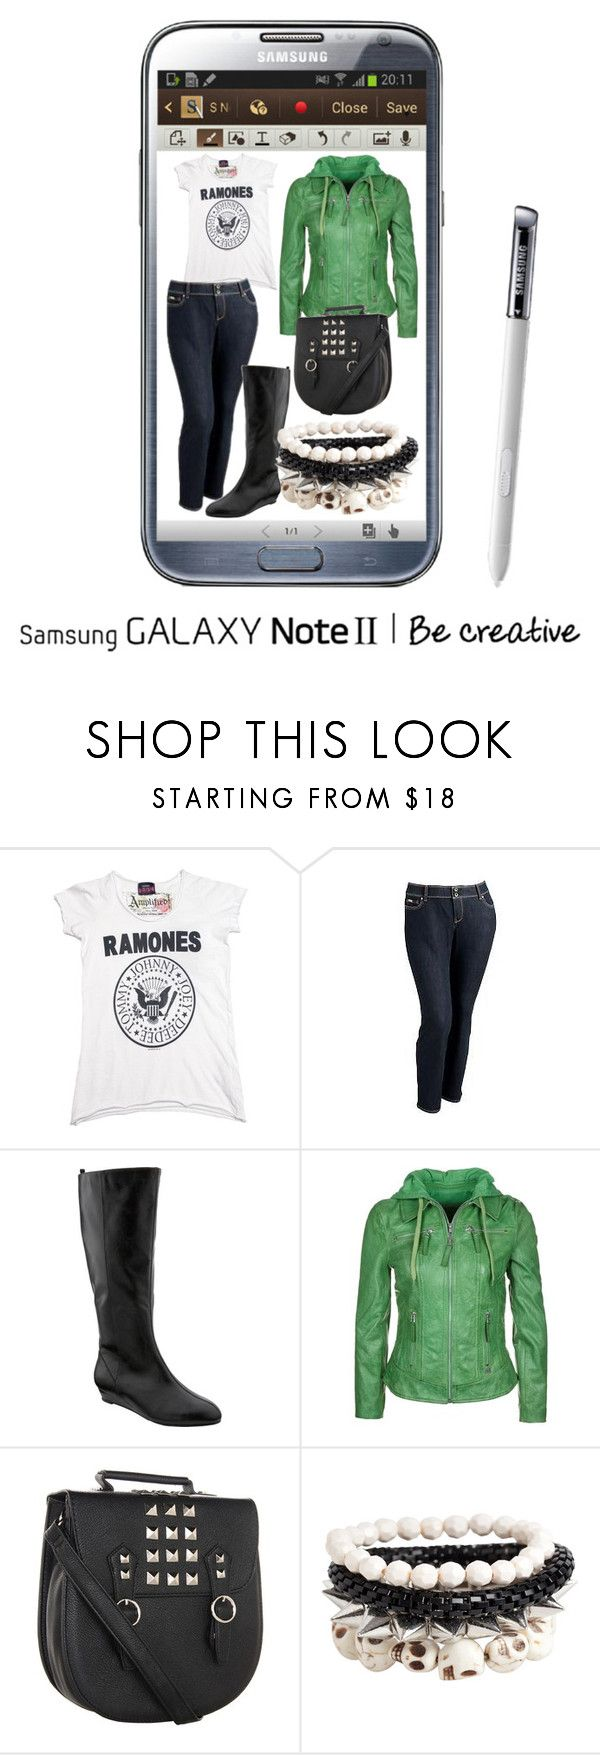 """Effortless Edge"" by goldenfirefly85 ❤ liked on Polyvore featuring Samsung, Old Navy, Freaky Nation, Steve Madden and Pieces"